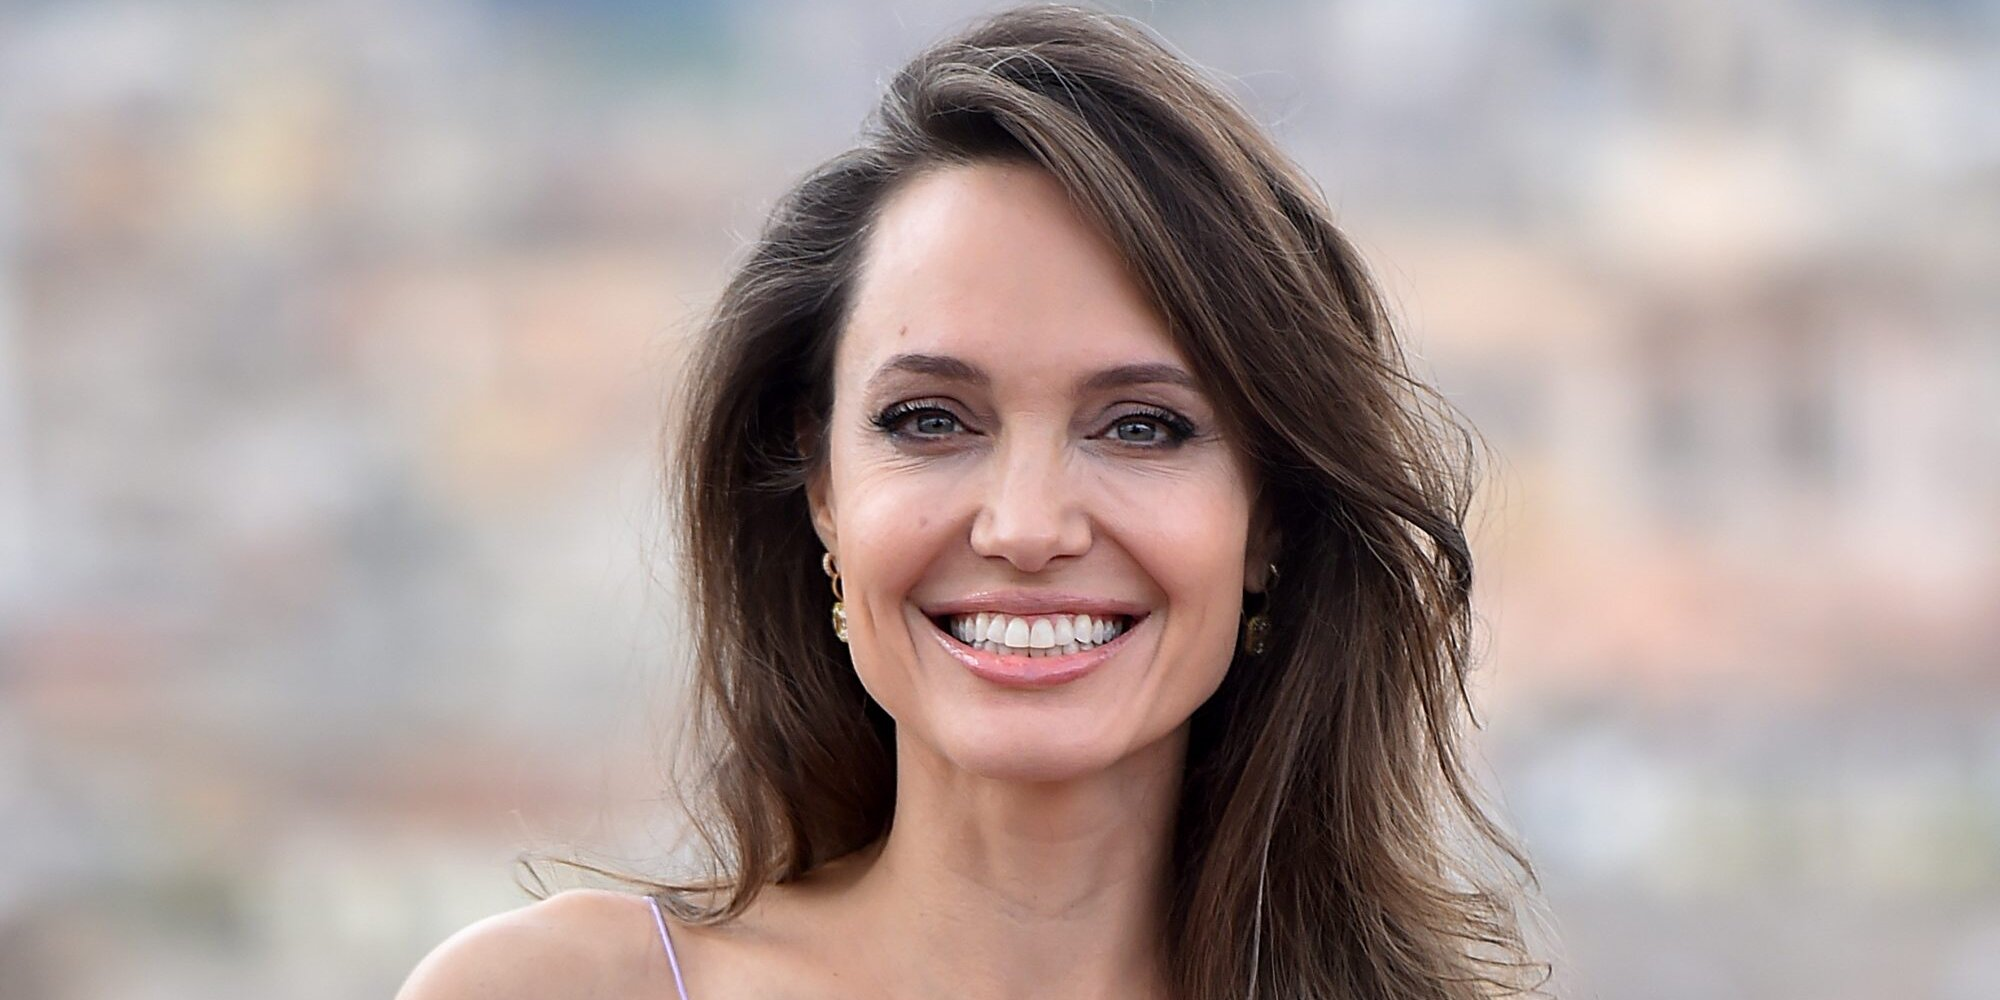 Angelina Jolie Jokes She Has a 'Long List' of Relationship Deal-Breakers: 'Been Alone Too Long'